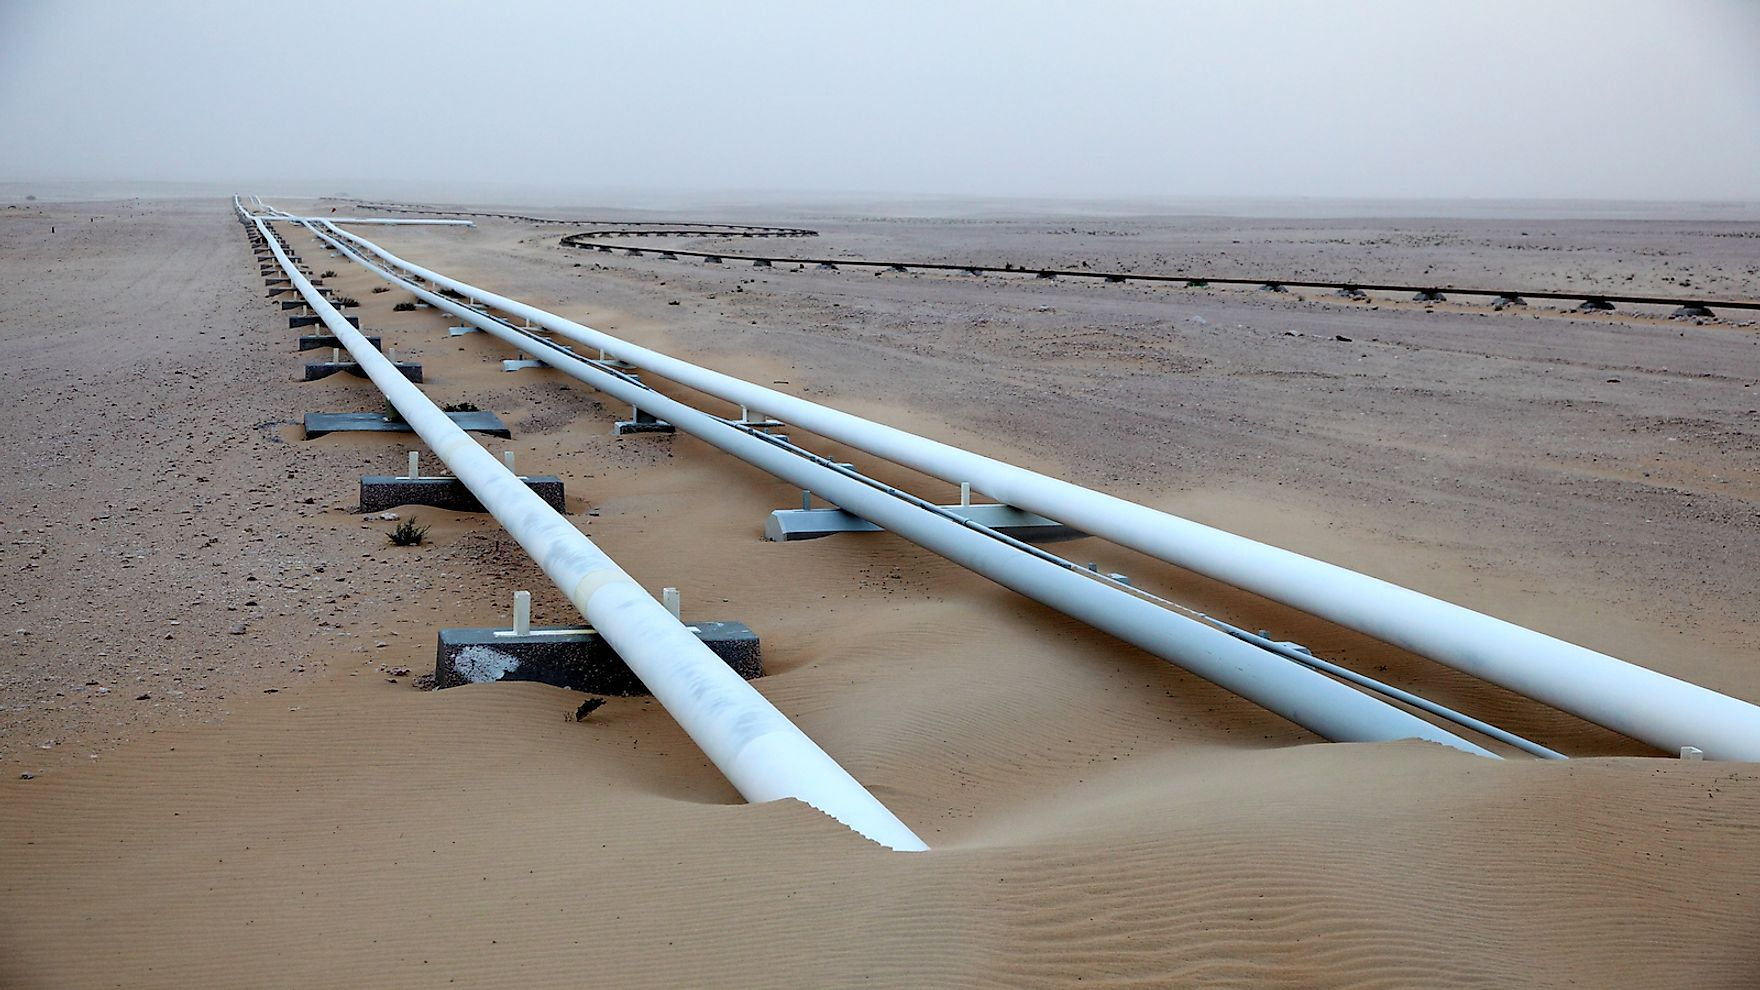 Oil pipeline in the desert of Qatar.